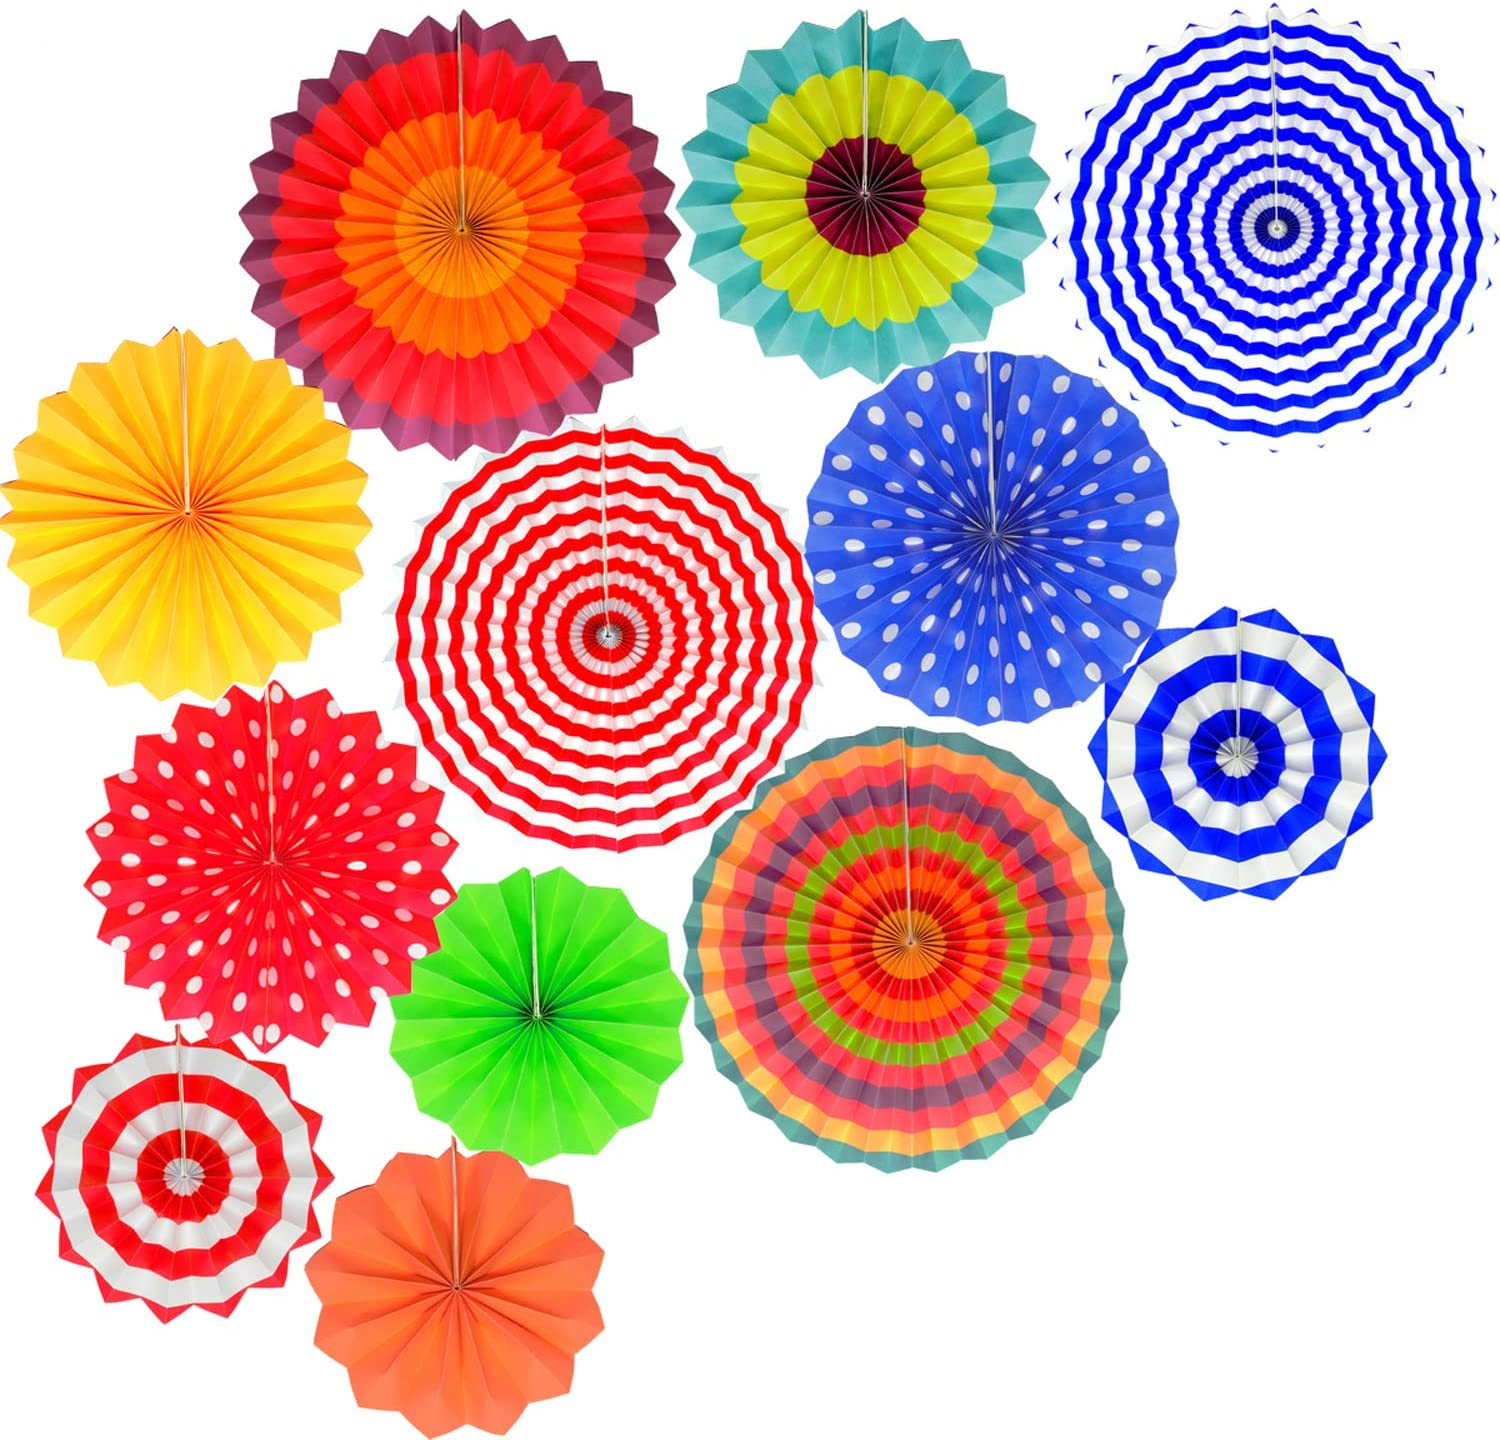 Fiesta Decorations Hanging Paper Fans- Colorful Mexican Fiesta Party Supplies Photo Props for Events,Wedding Birthday Carnival Baby Shower Party Decorations (Set of 12)